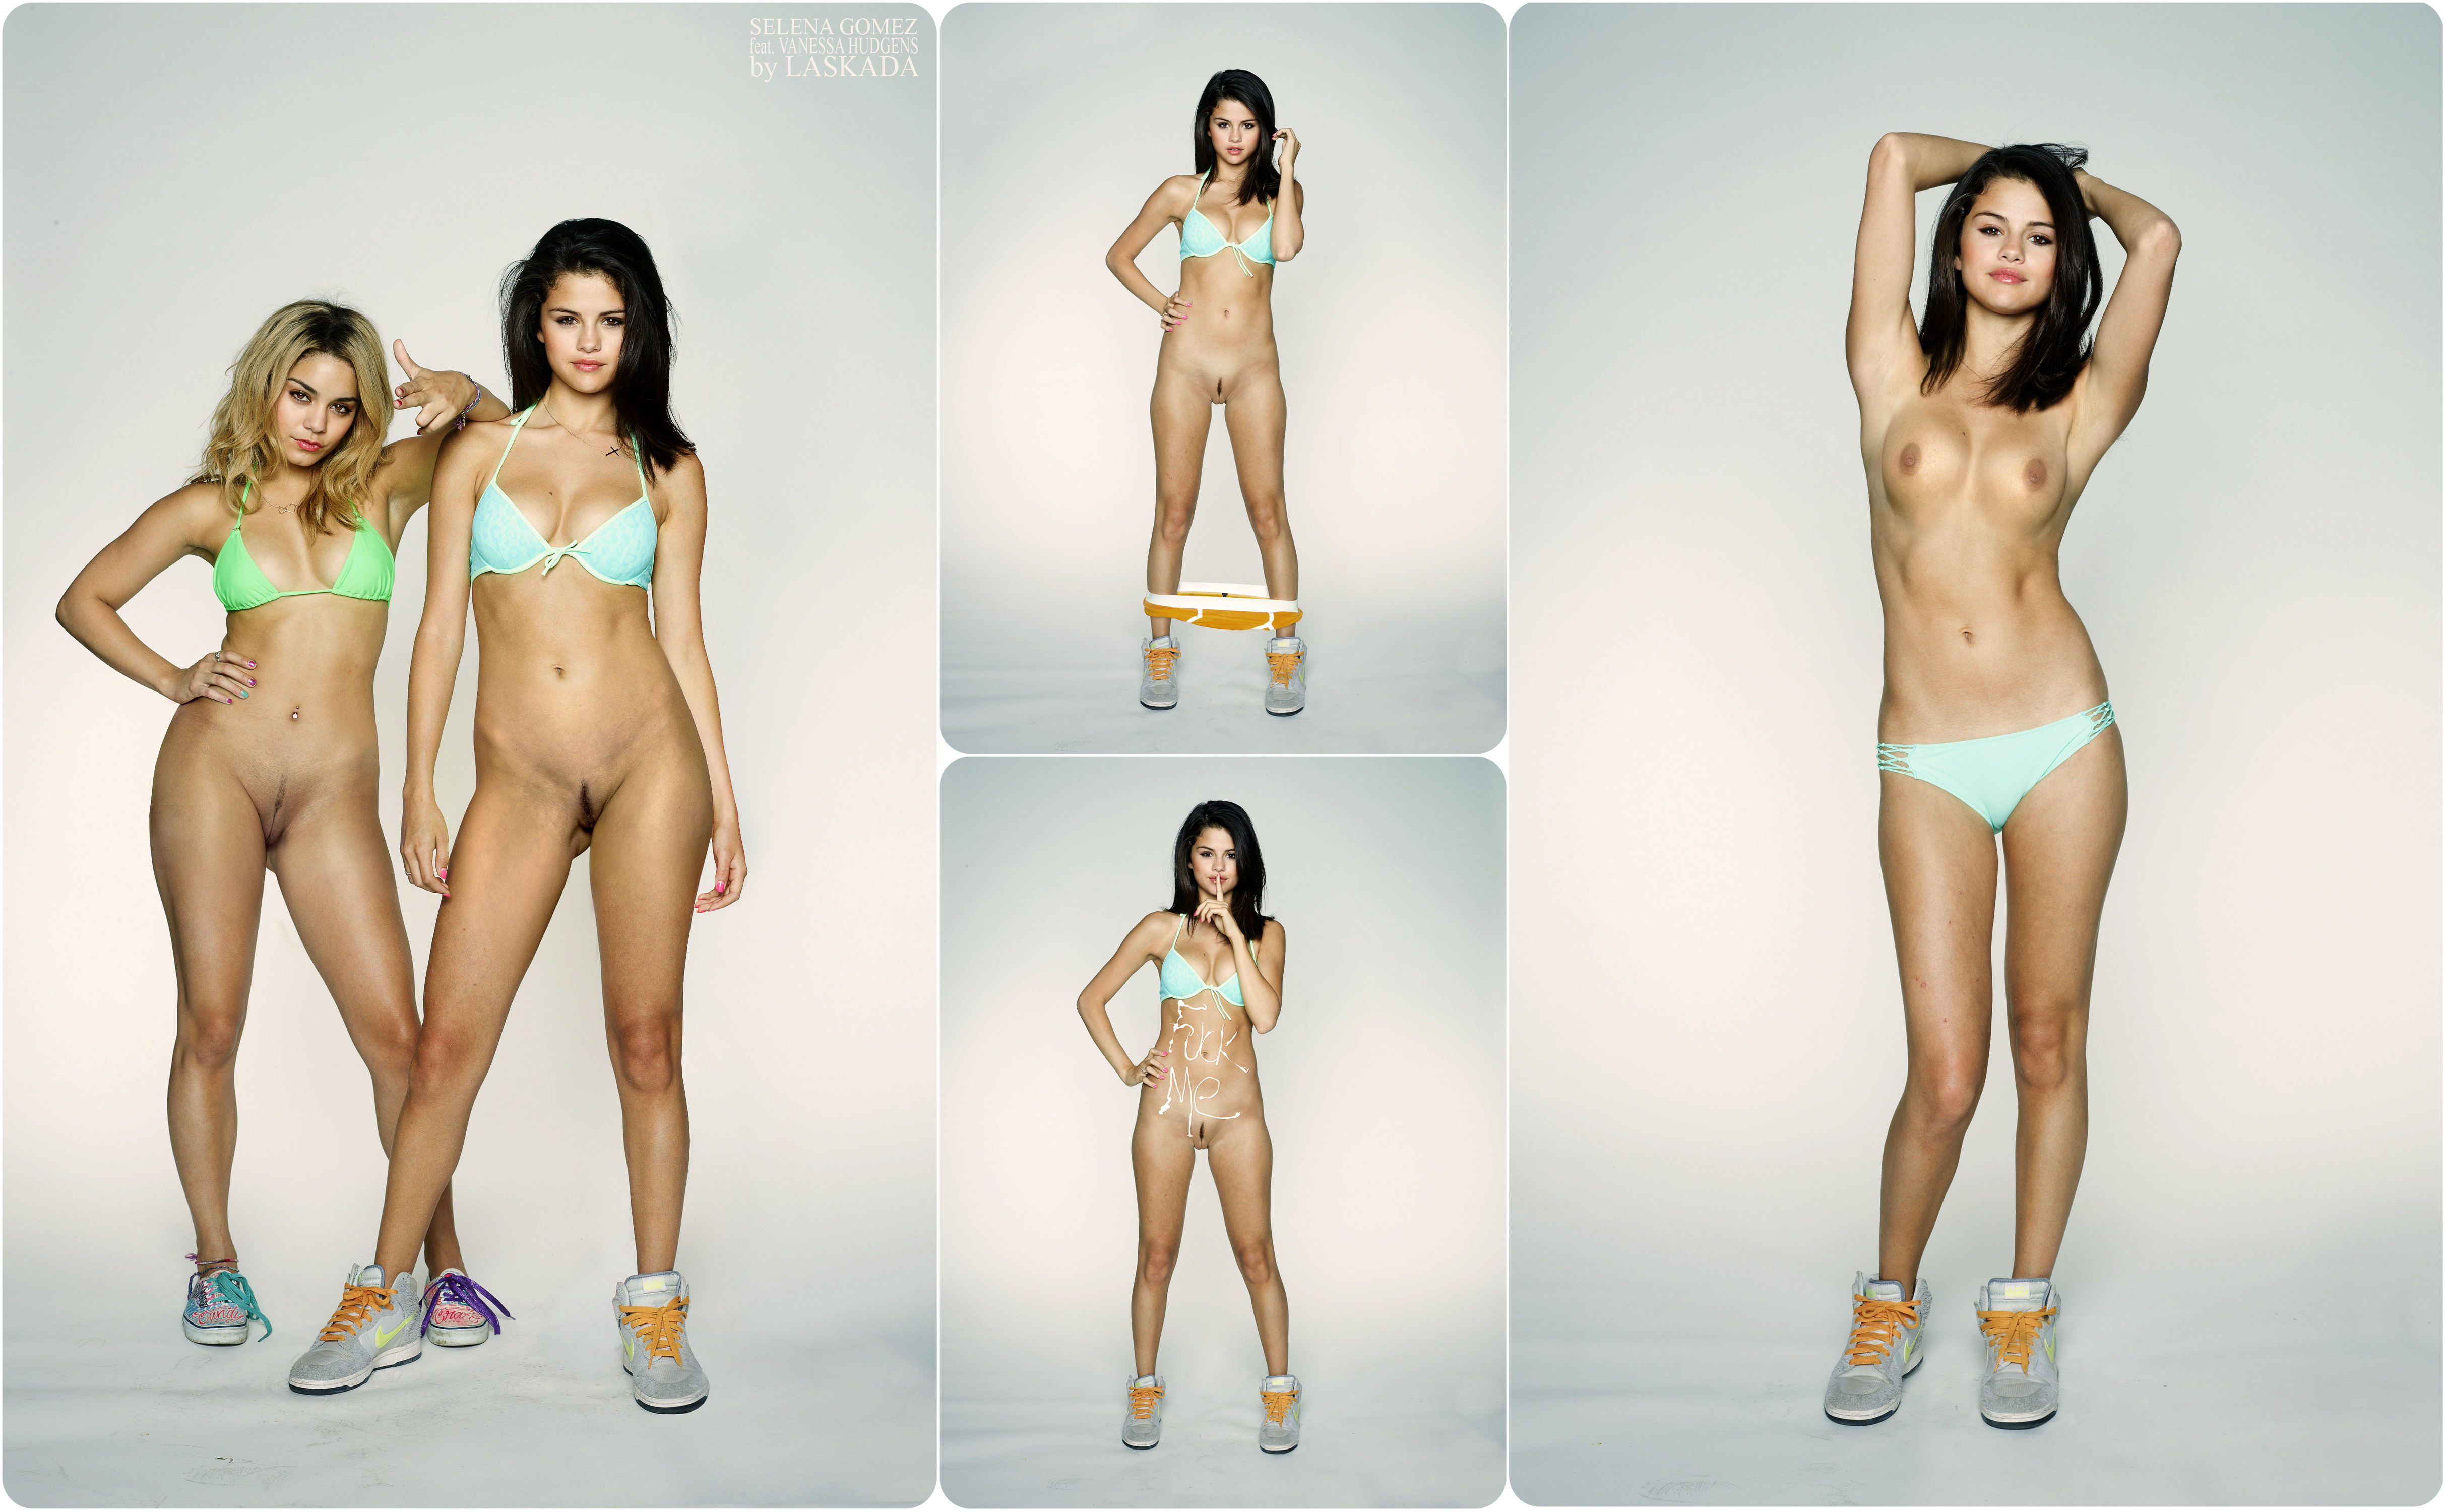 With you Selena gomez spring breakers fakes you science